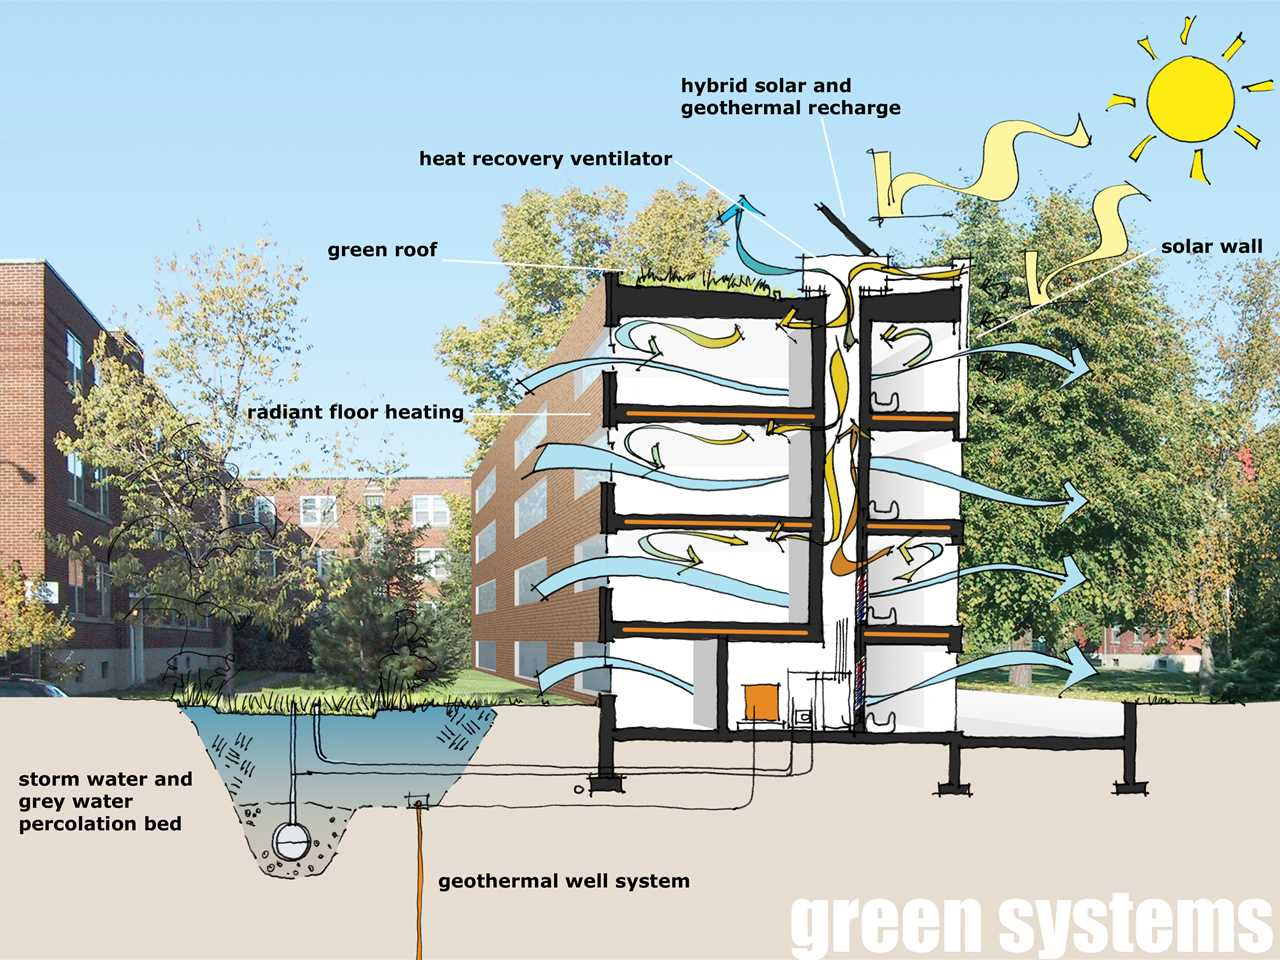 Project entry 2005 North America – Greening the Infrastructure at Benny Farm, Montreal, QC, Canada